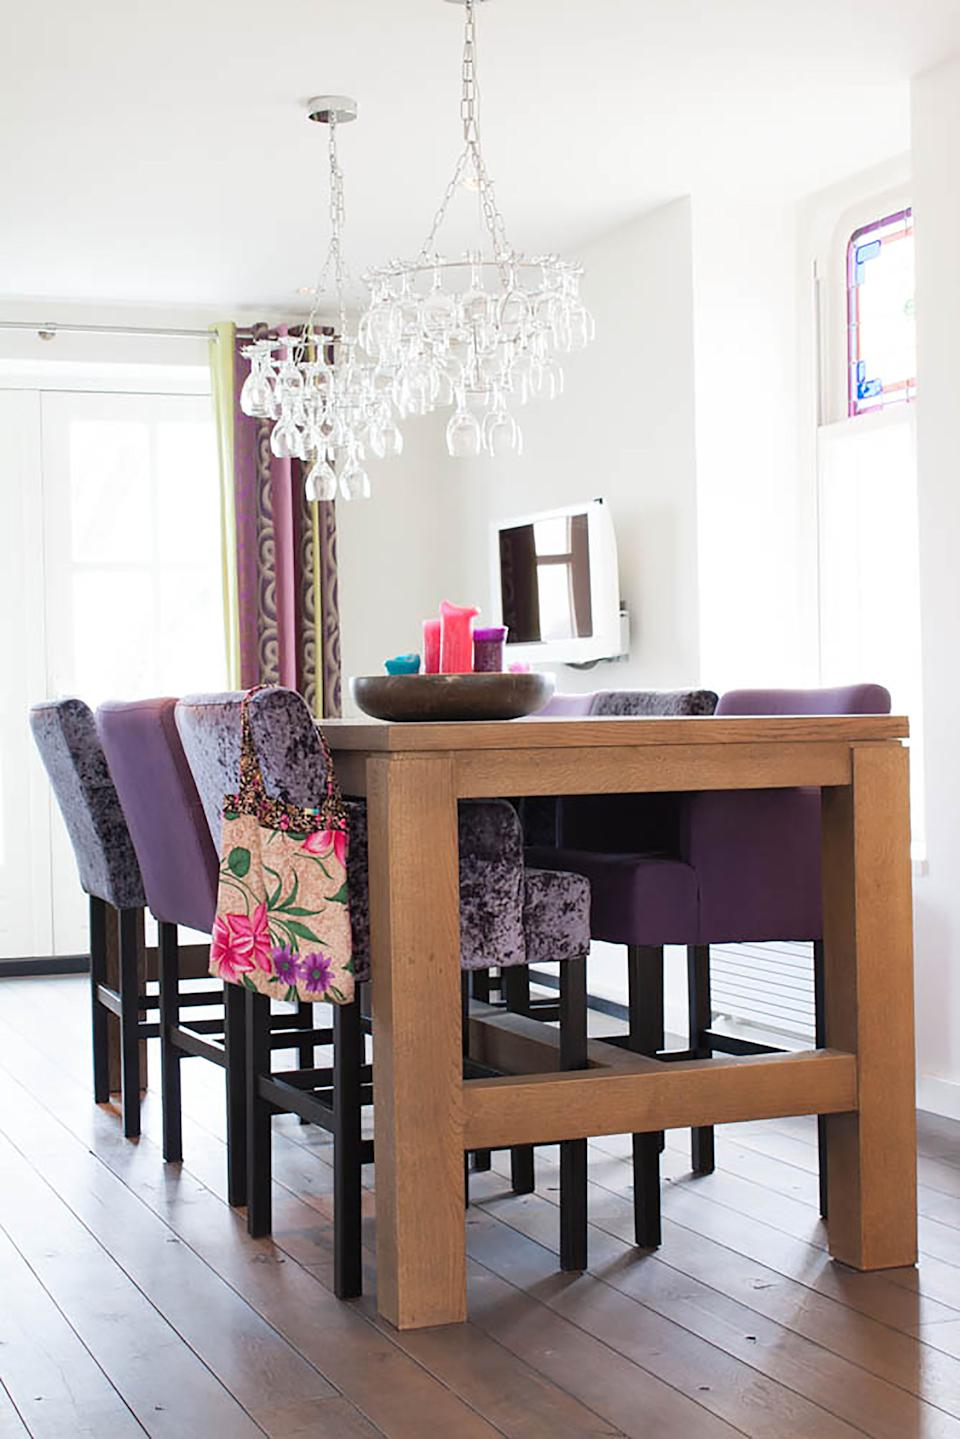 A one-tone dining set is giving way to a combination of colours and patterns on dining chairs. That is why we're seeing many designers and homeowners are mixing up types of fabric upholstery, adding eclecticism to the arrangement with a blend of block colours, florals, chevron & basketweave patterns. Photo credit: HOUZZ